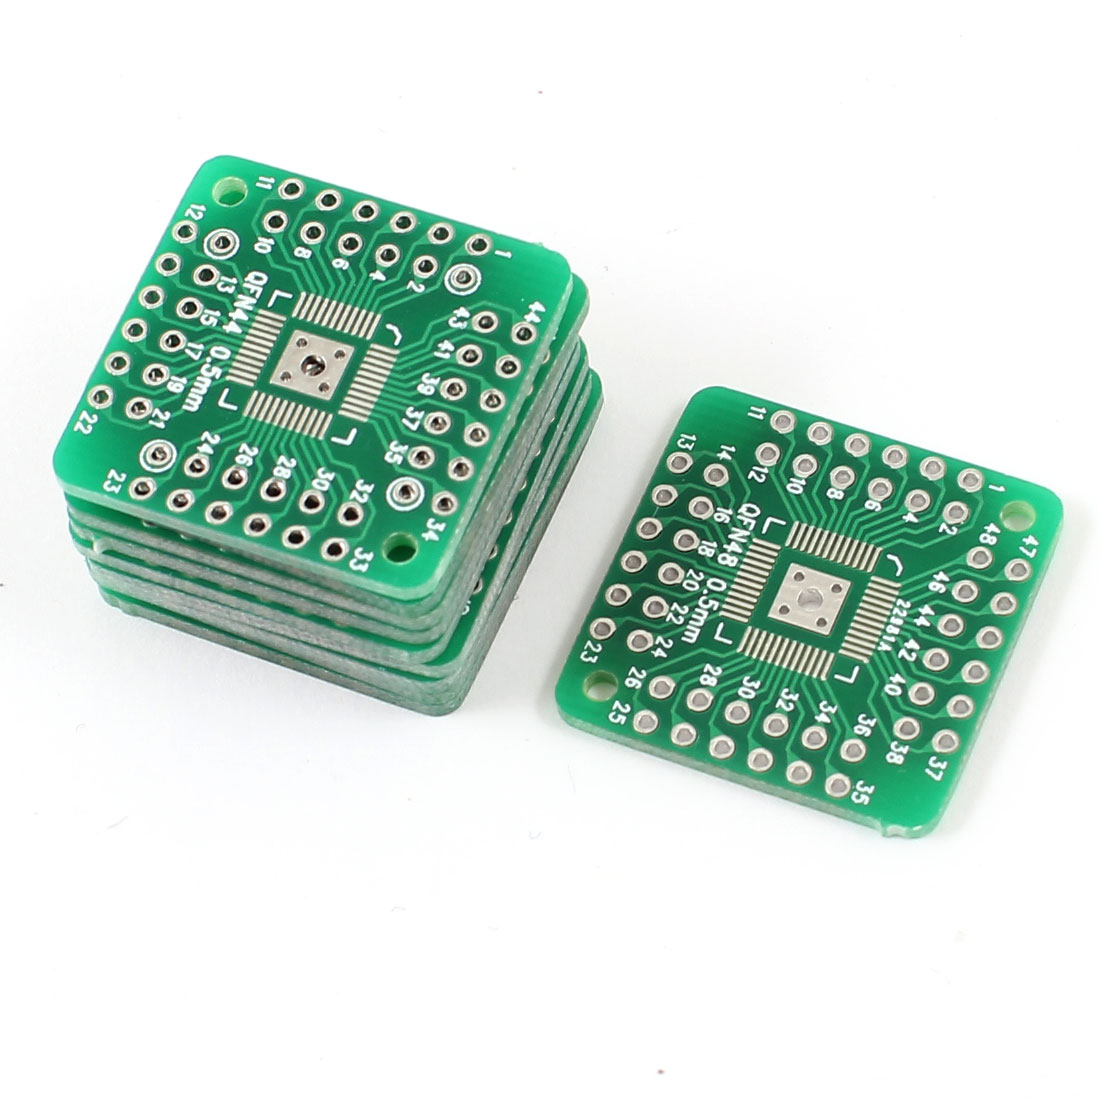 10 Pcs QFN44 to QFN48 0.5mm Pitch Double Sides DIP Mounting PCB Adapter Converter Plate Board